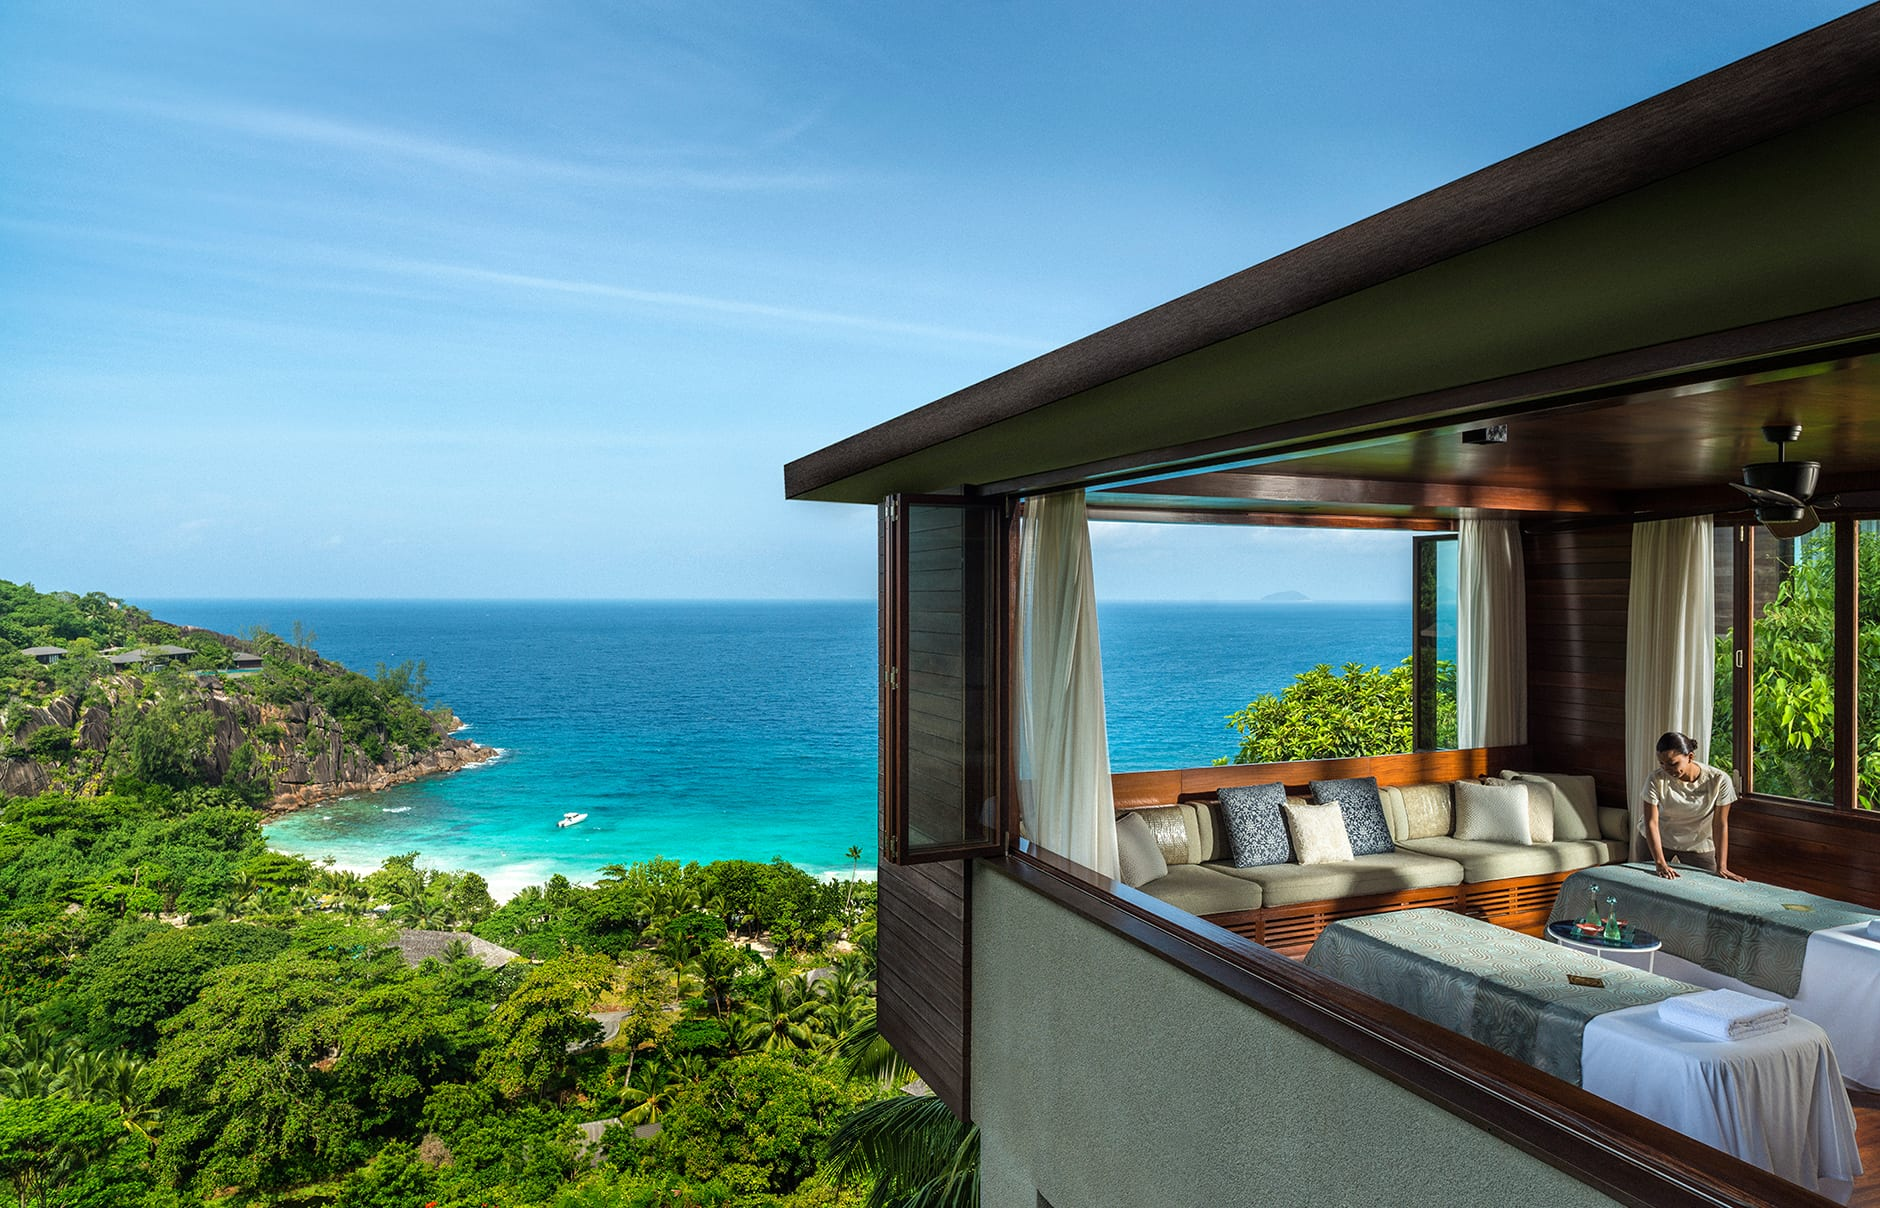 Four Seasons Resort Seychelles, Mahe Island, Seychelles. Hotel Review by TravelPlusStyle. Photo © Four Seasons